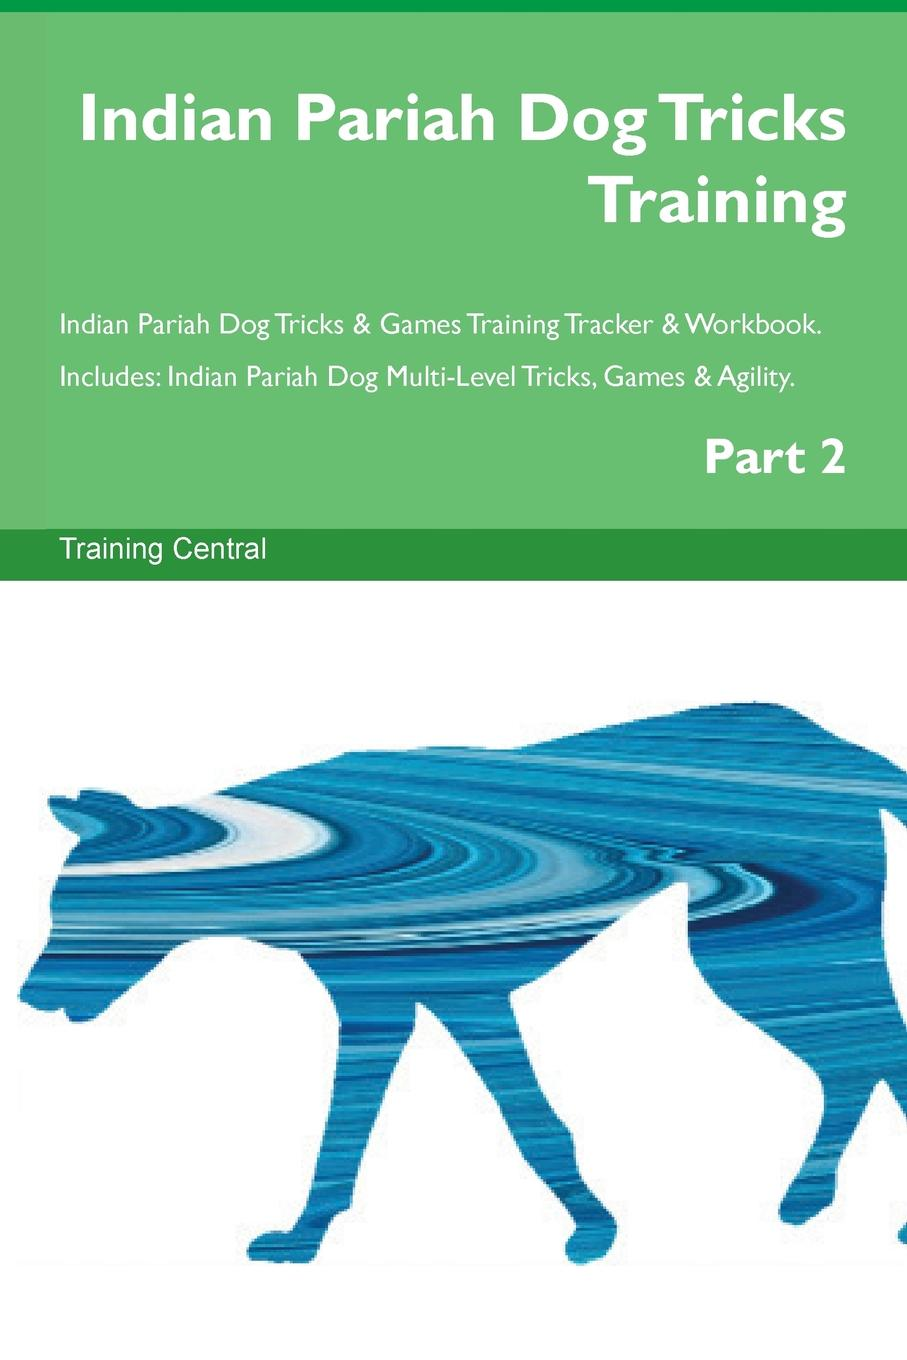 Training Central Indian Pariah Dog Tricks Training Indian Pariah Dog Tricks . Games Training Tracker . Workbook. Includes. Indian Pariah Dog Multi-Level Tricks, Games . Agility. Part 2 elizabeth rae kovar finding om an indian journey of rickshaws chai chapattis gurus